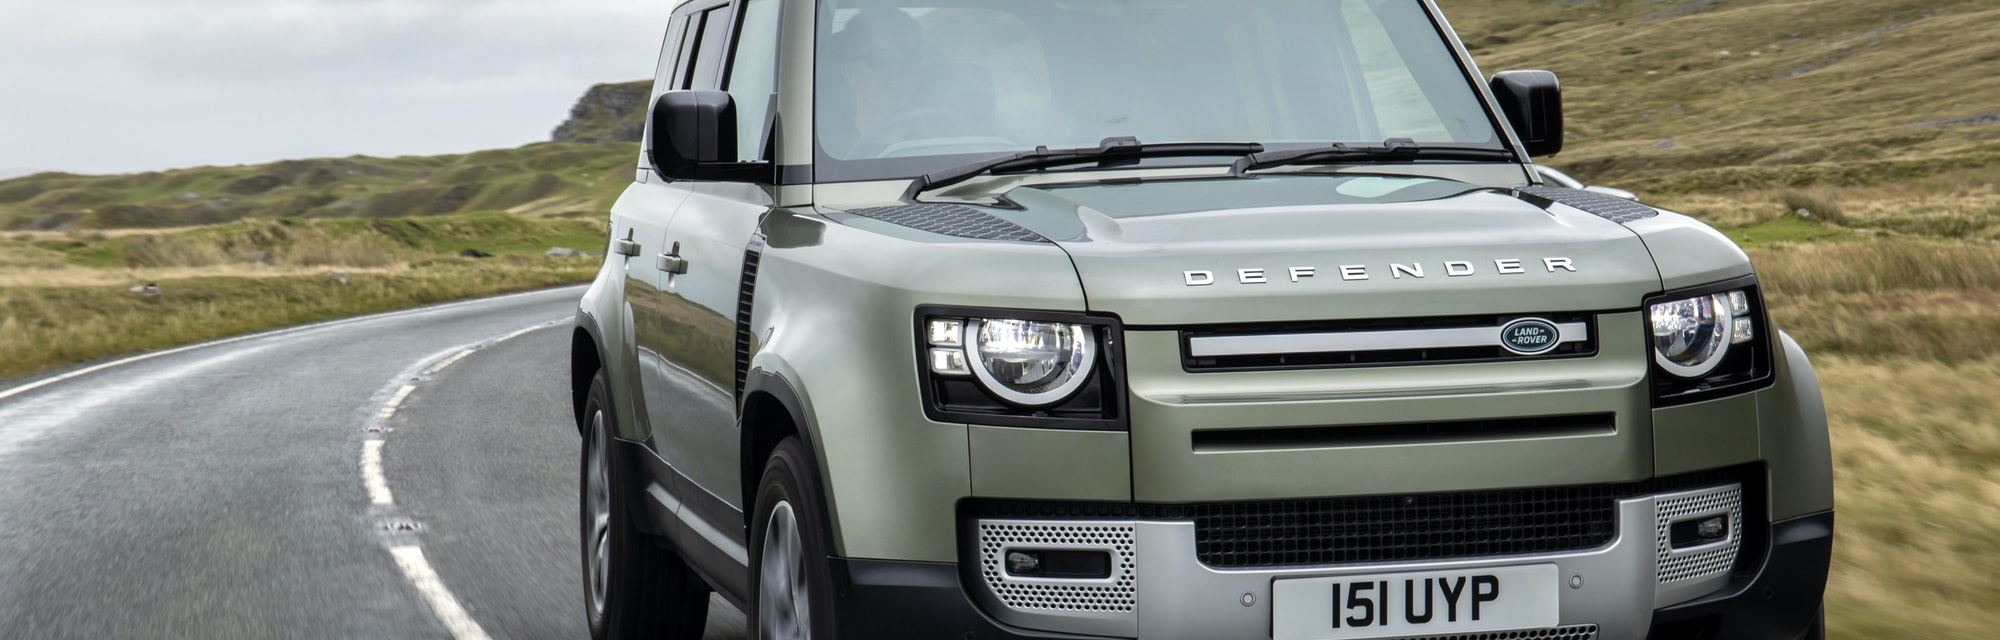 The Land Rover Defender